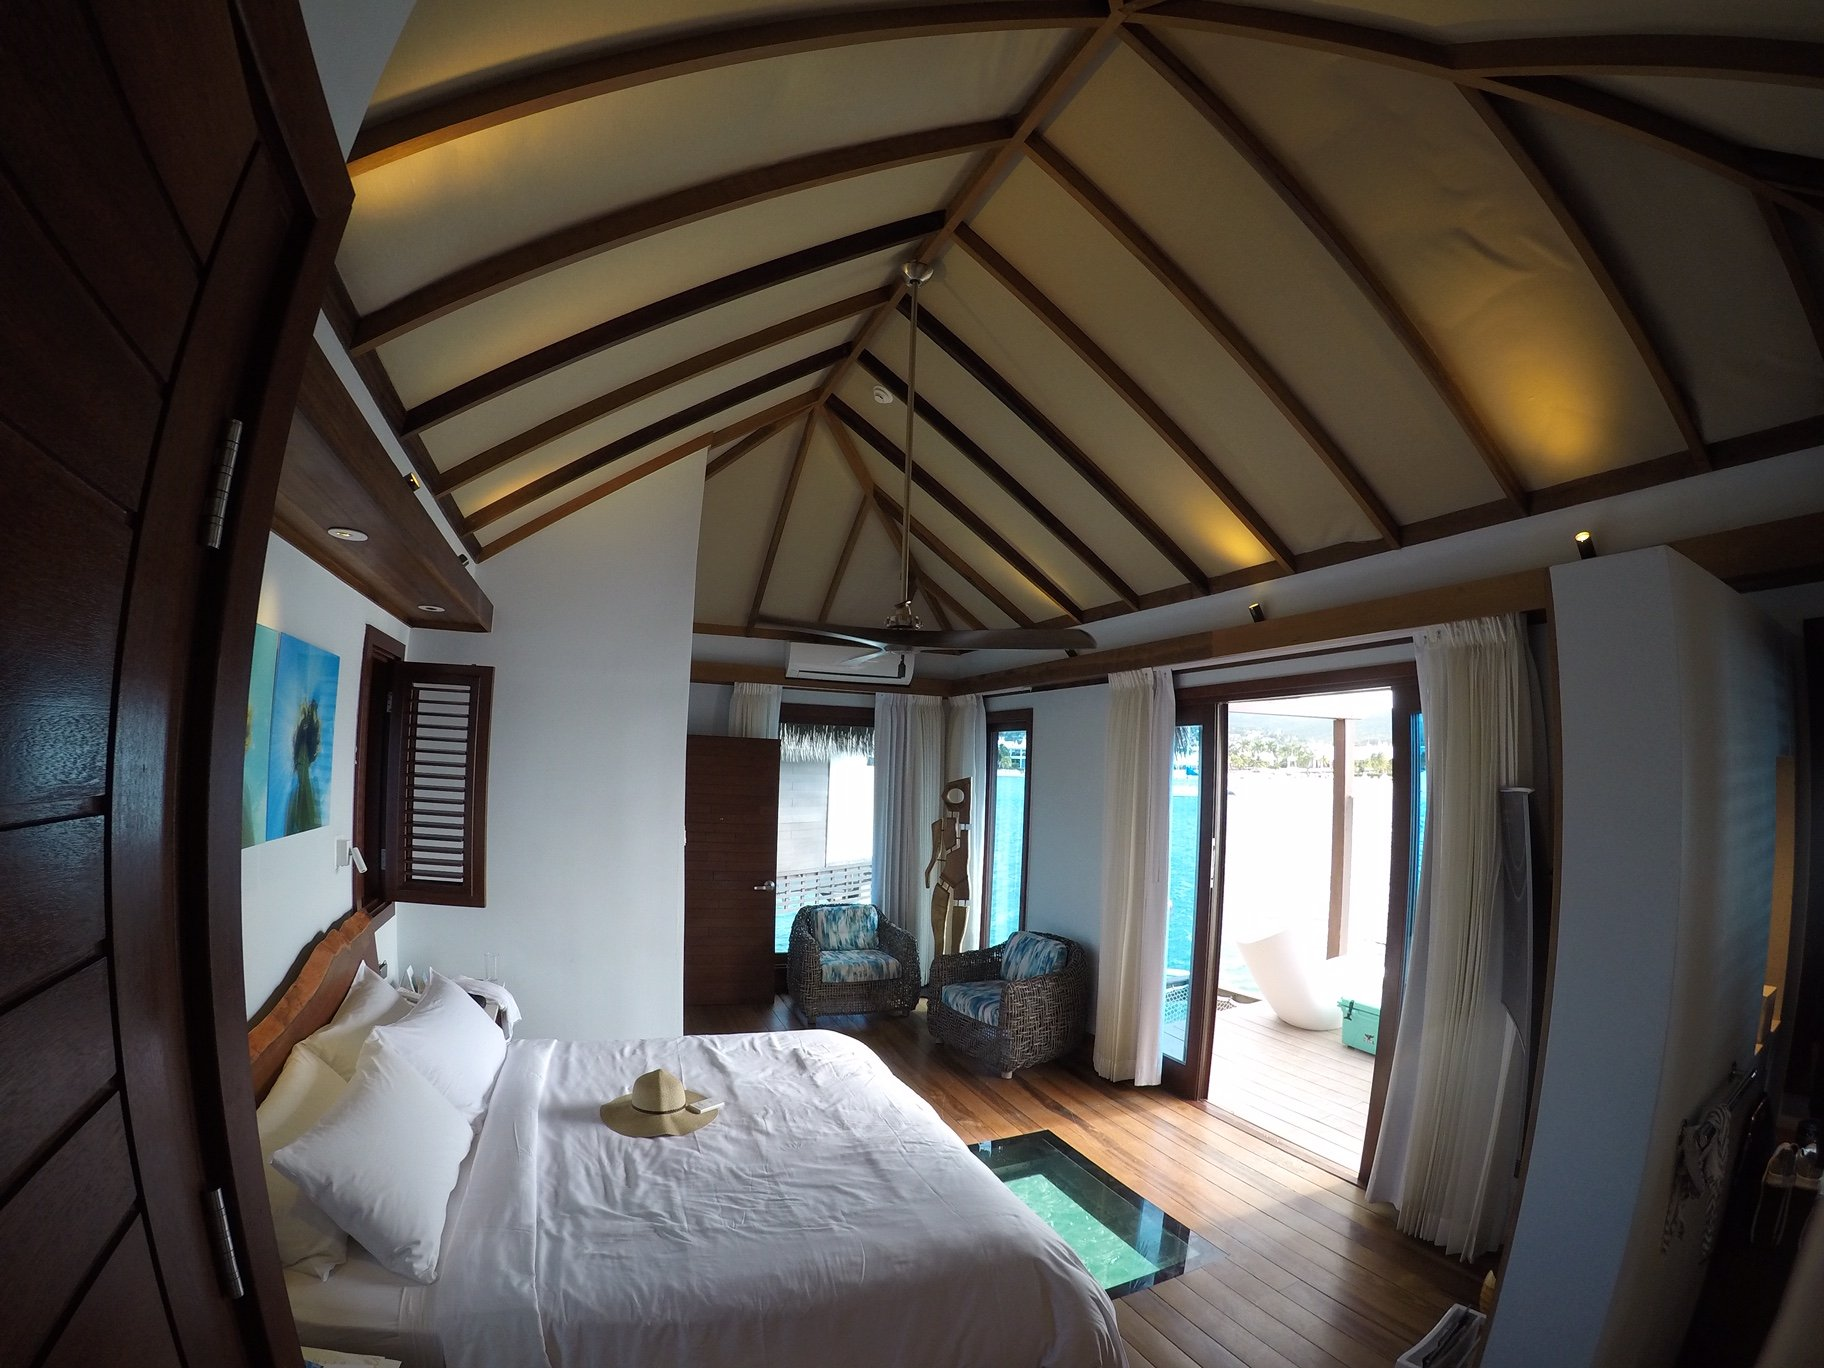 All Inclusive OverWater Bungalow luxury suite